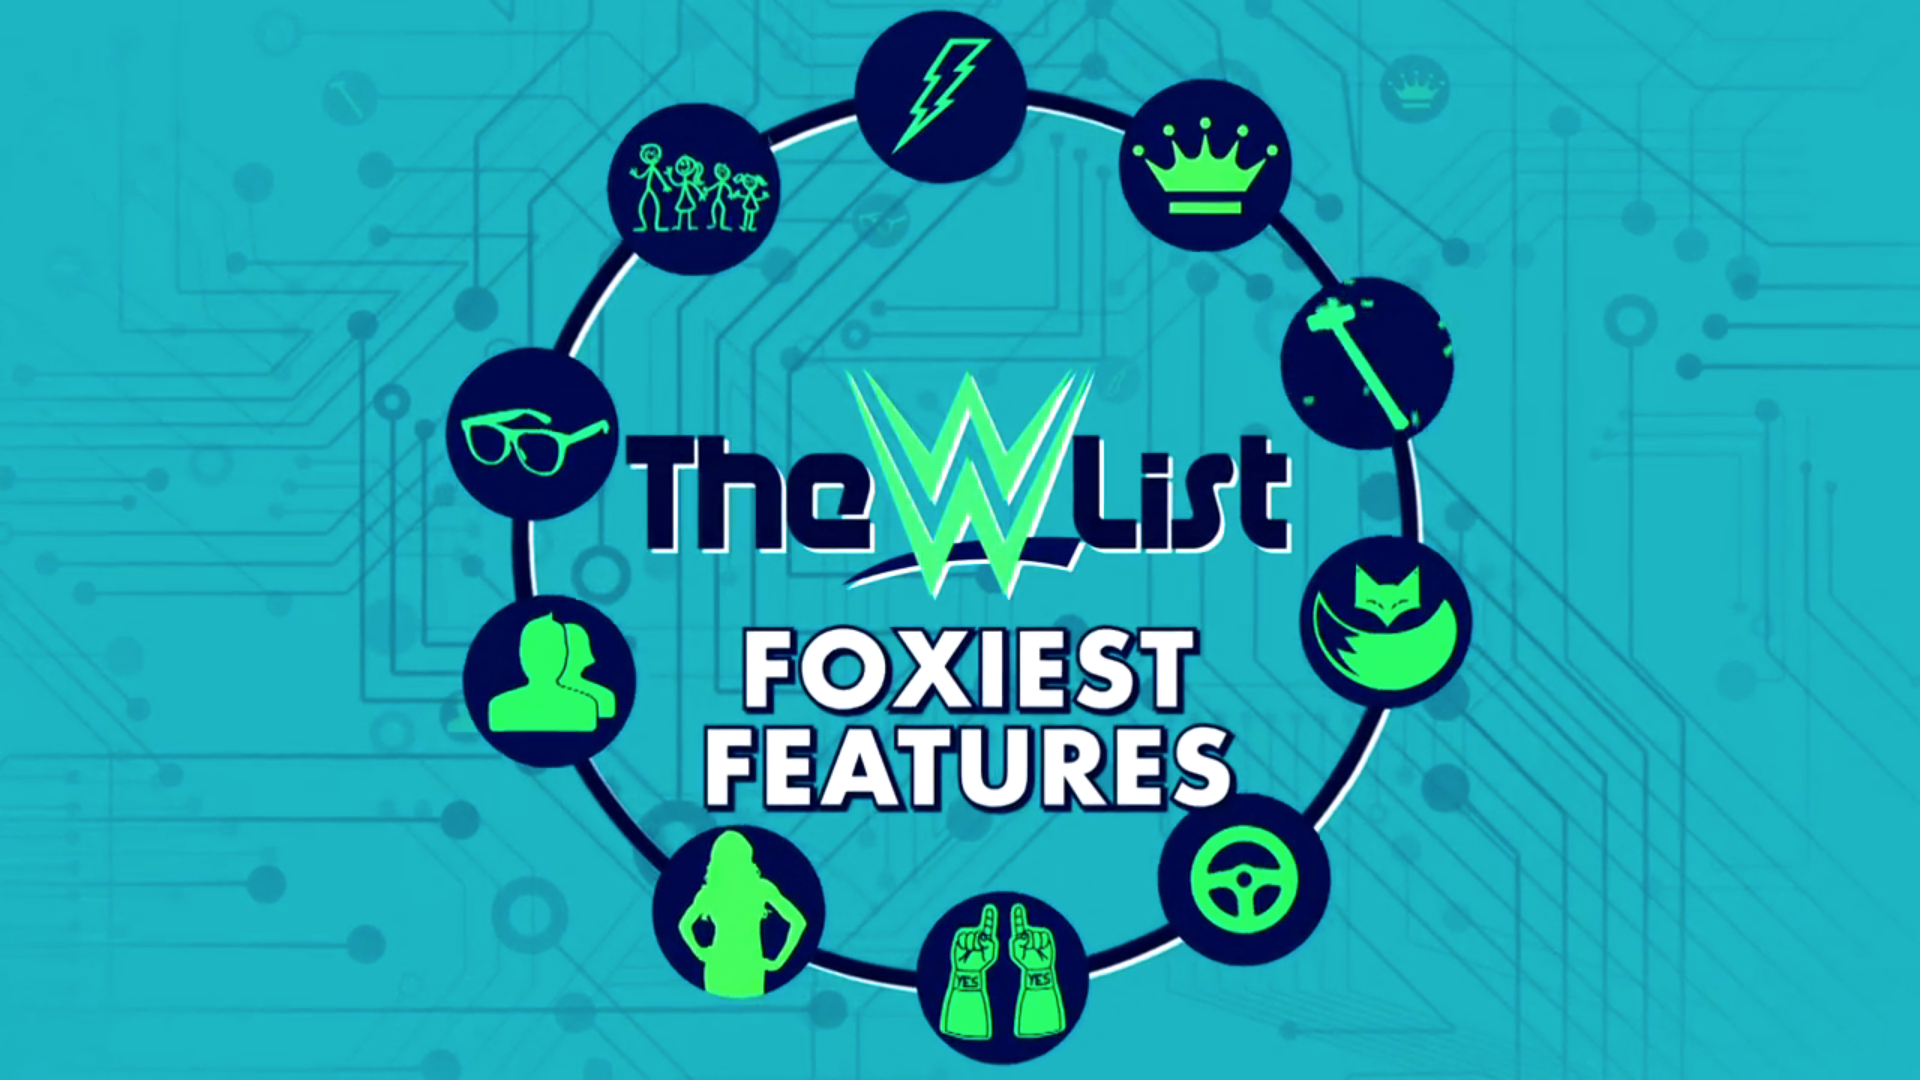 Foxiest Features